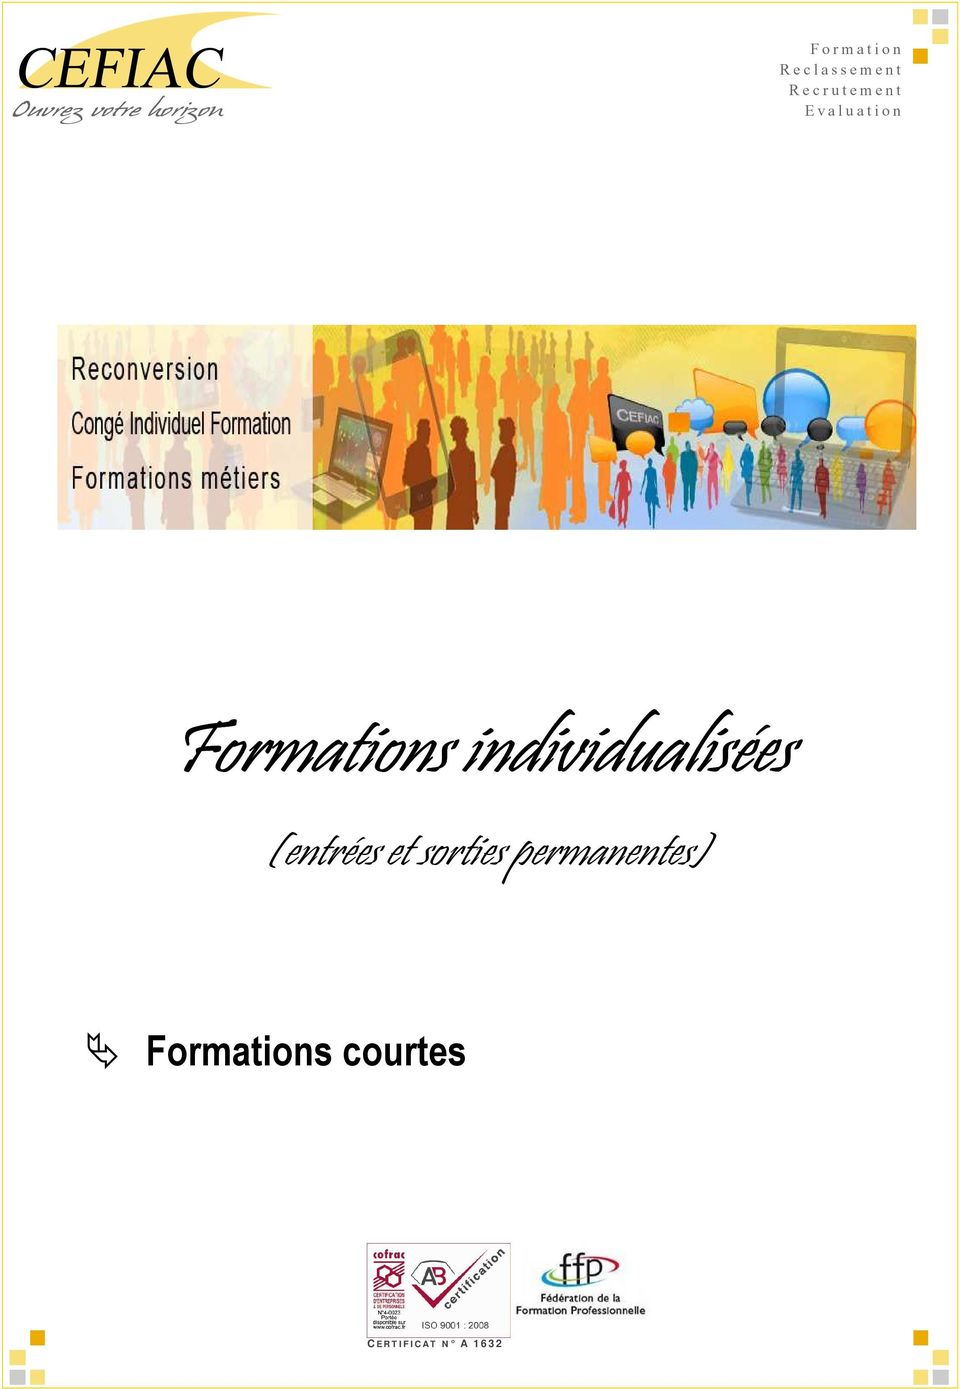 permanentes) Formations